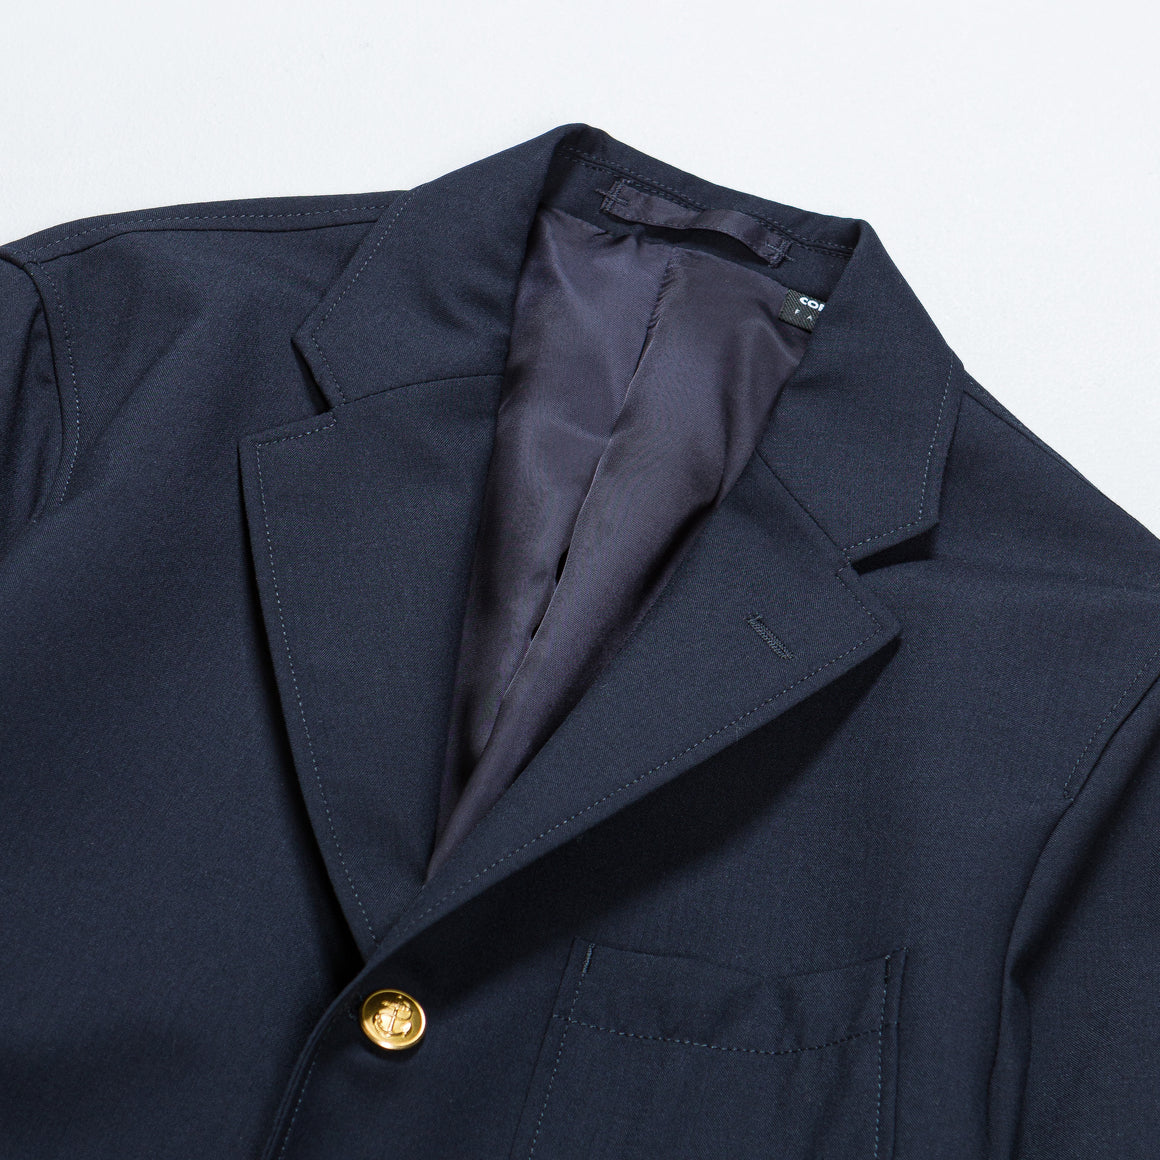 Beams Plus - 3B Blazer - Navy Combat Wool - Up There